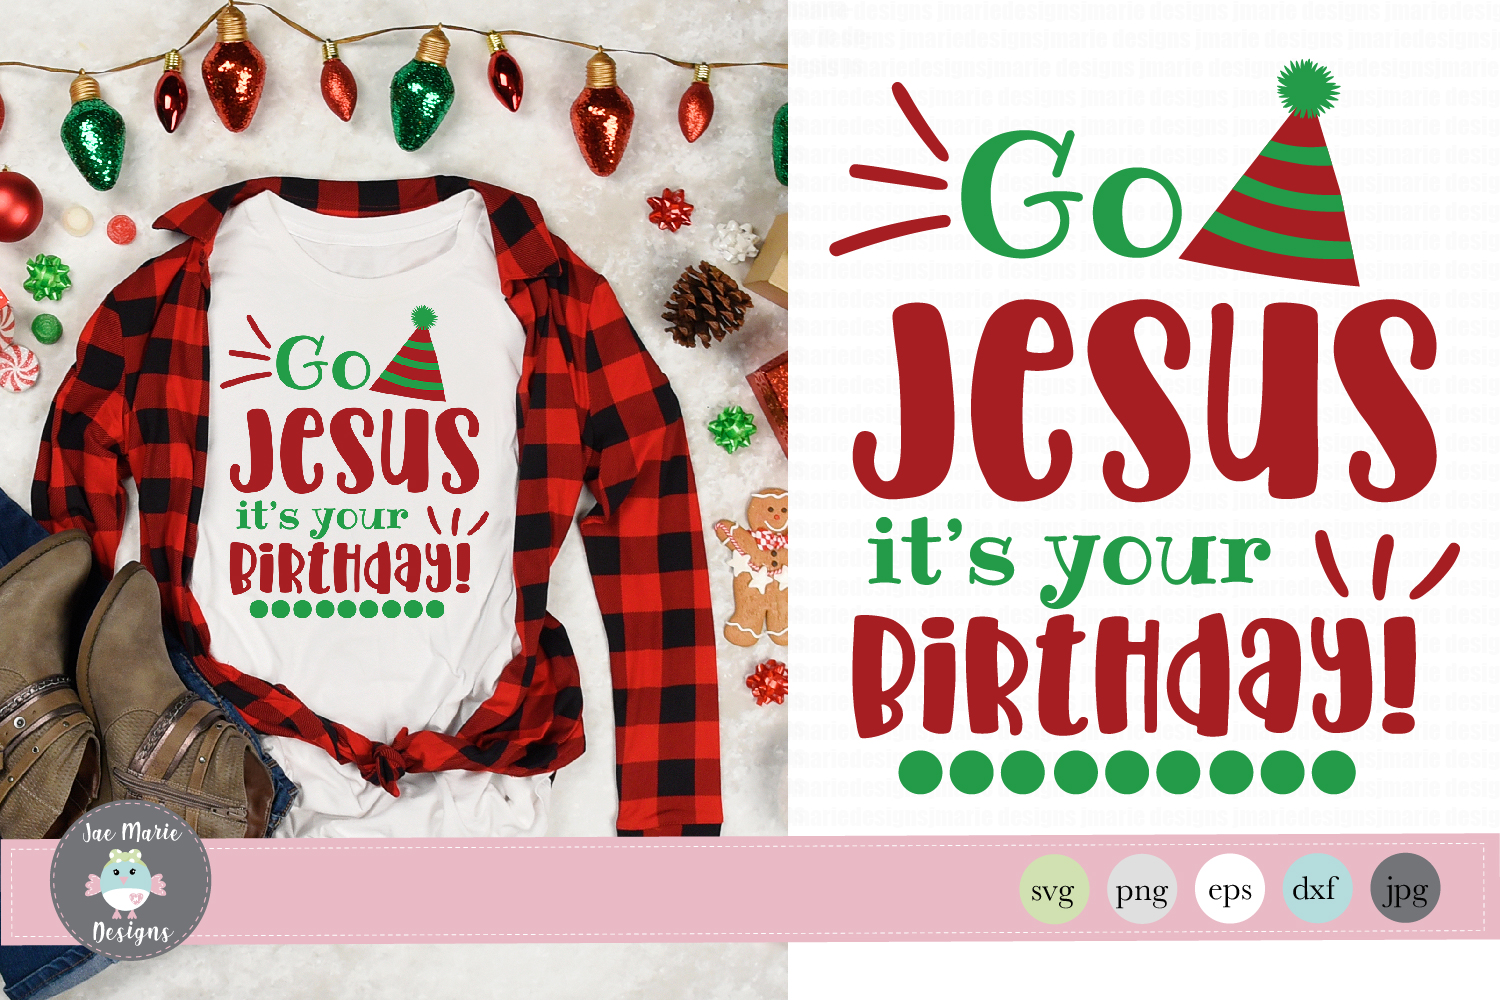 Go Jesus It's your birthday svg, christmas svg, sublimation example image 1